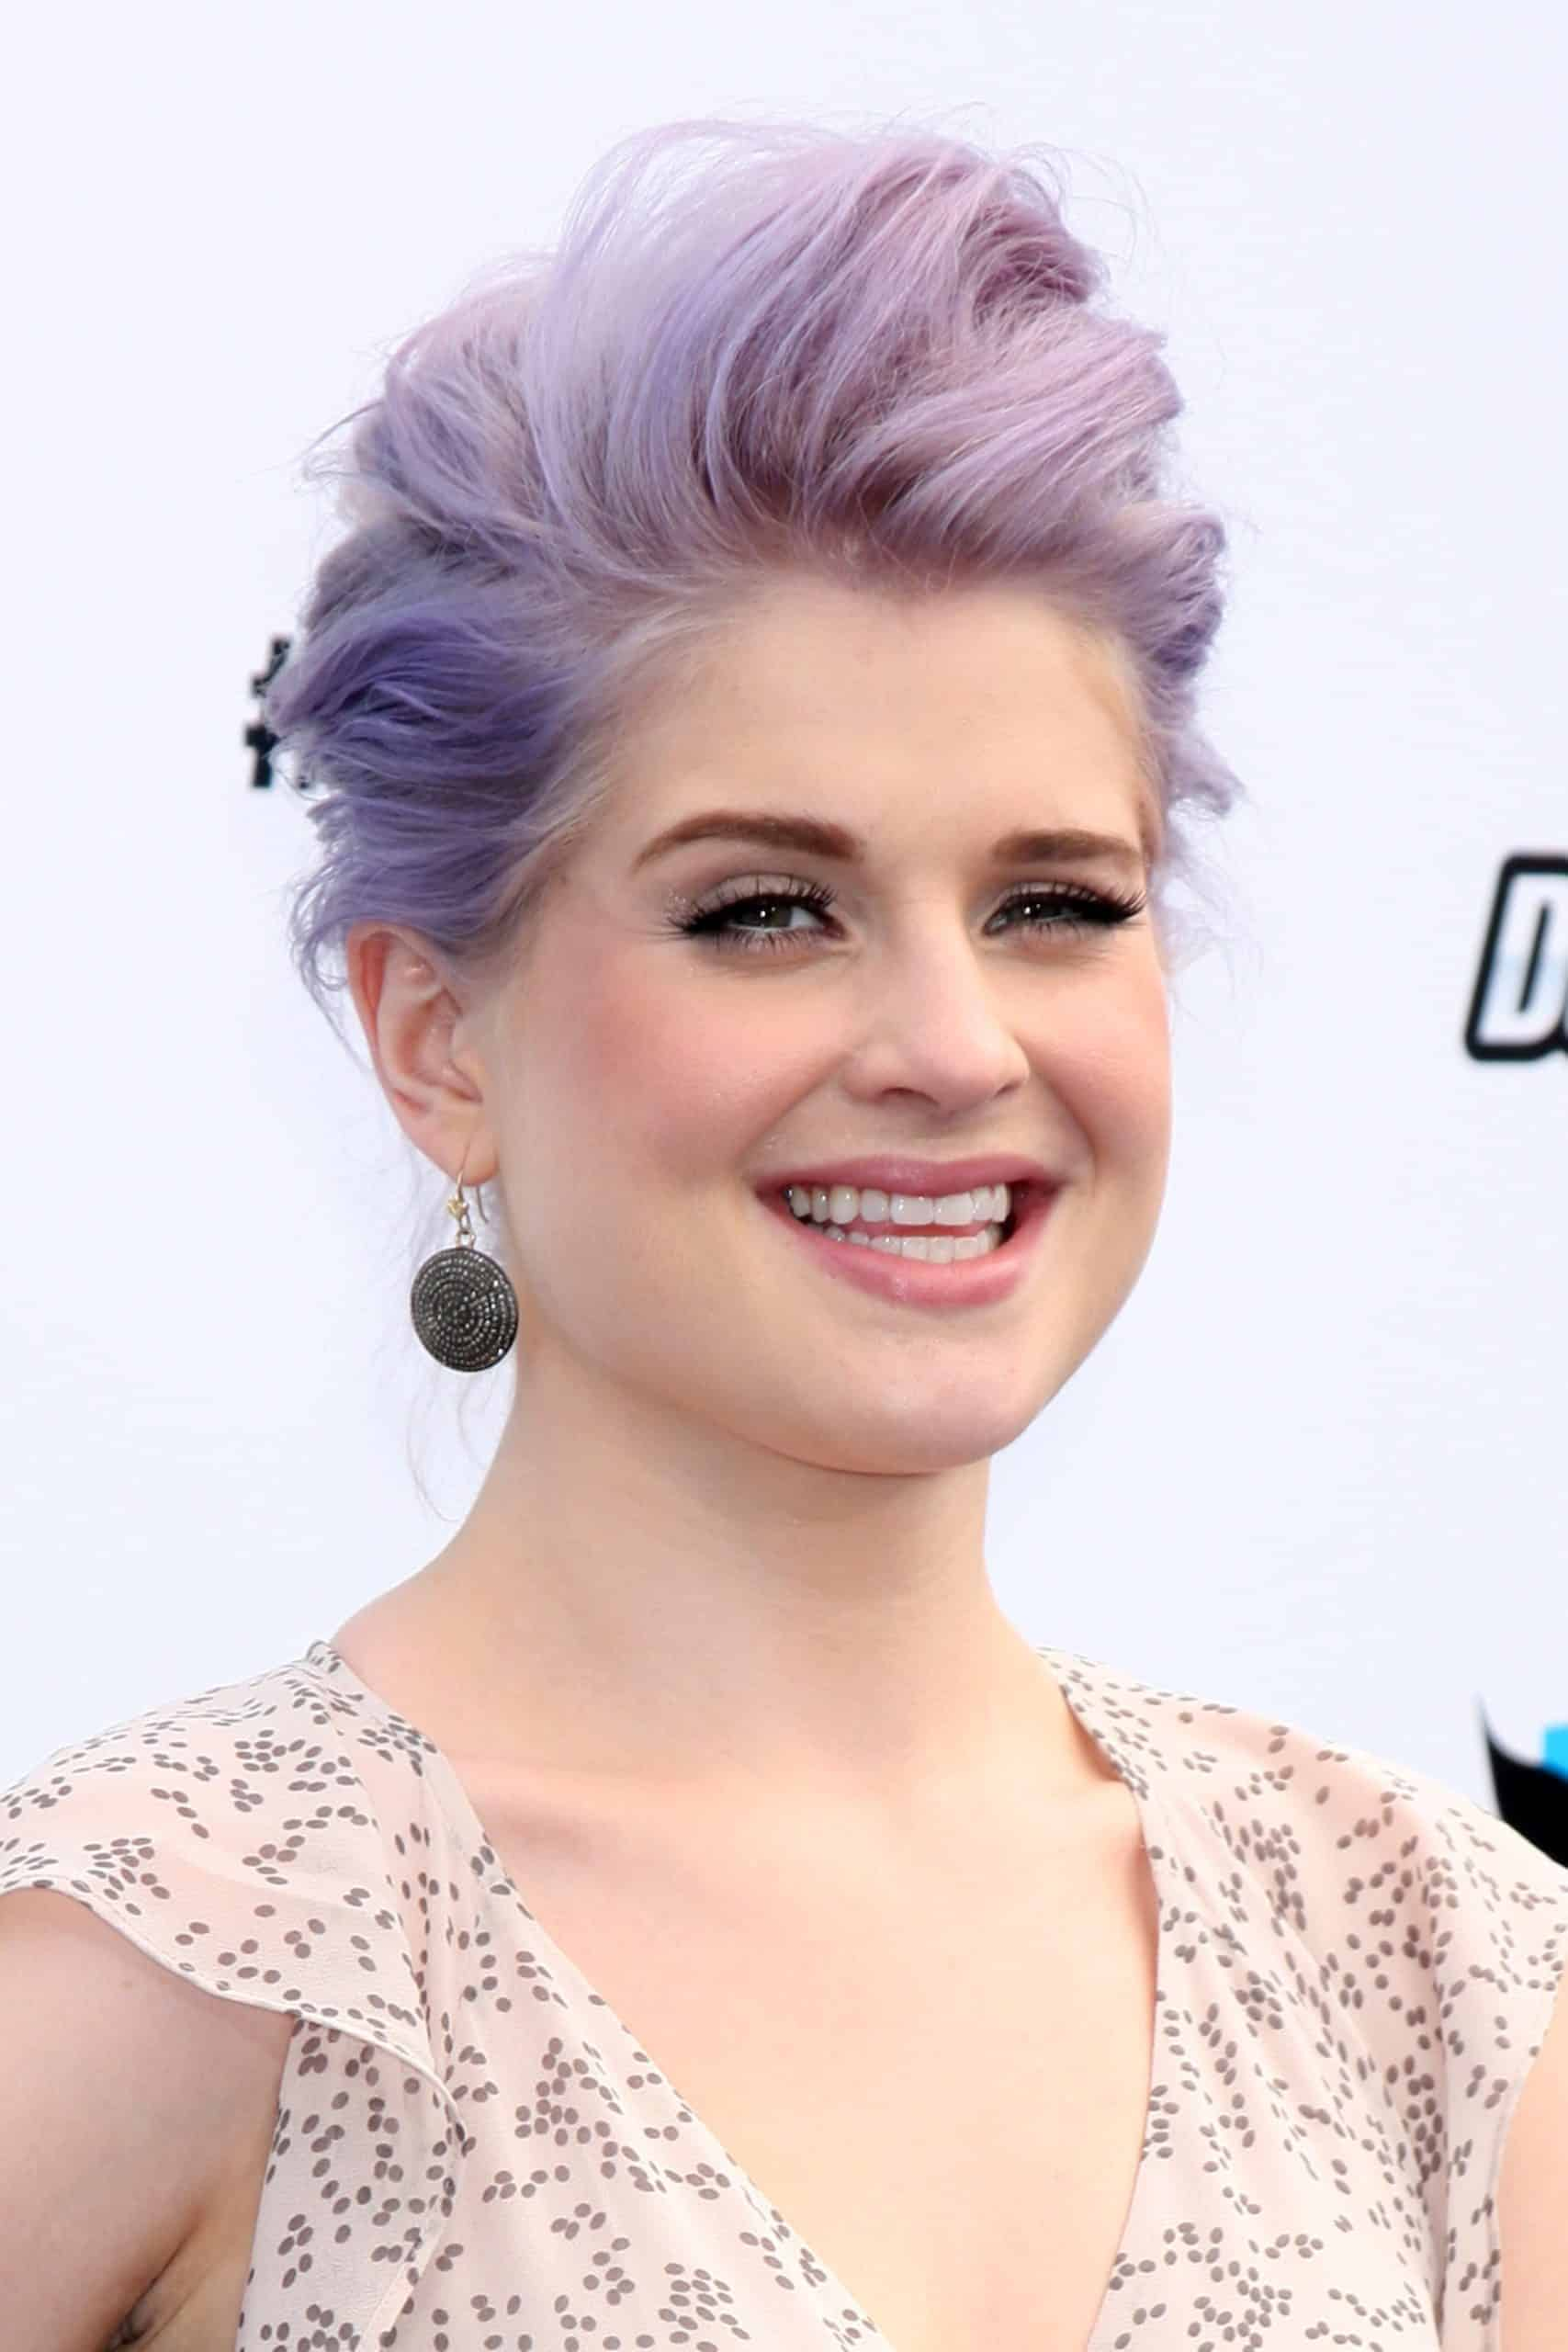 Kelly Osbourne looking stunning with her well-fixed purple hair. The photo was taken at 2012 Do Something Awards at Barker Hangar in Santa Monica, California. Photo taken on 19th of August.